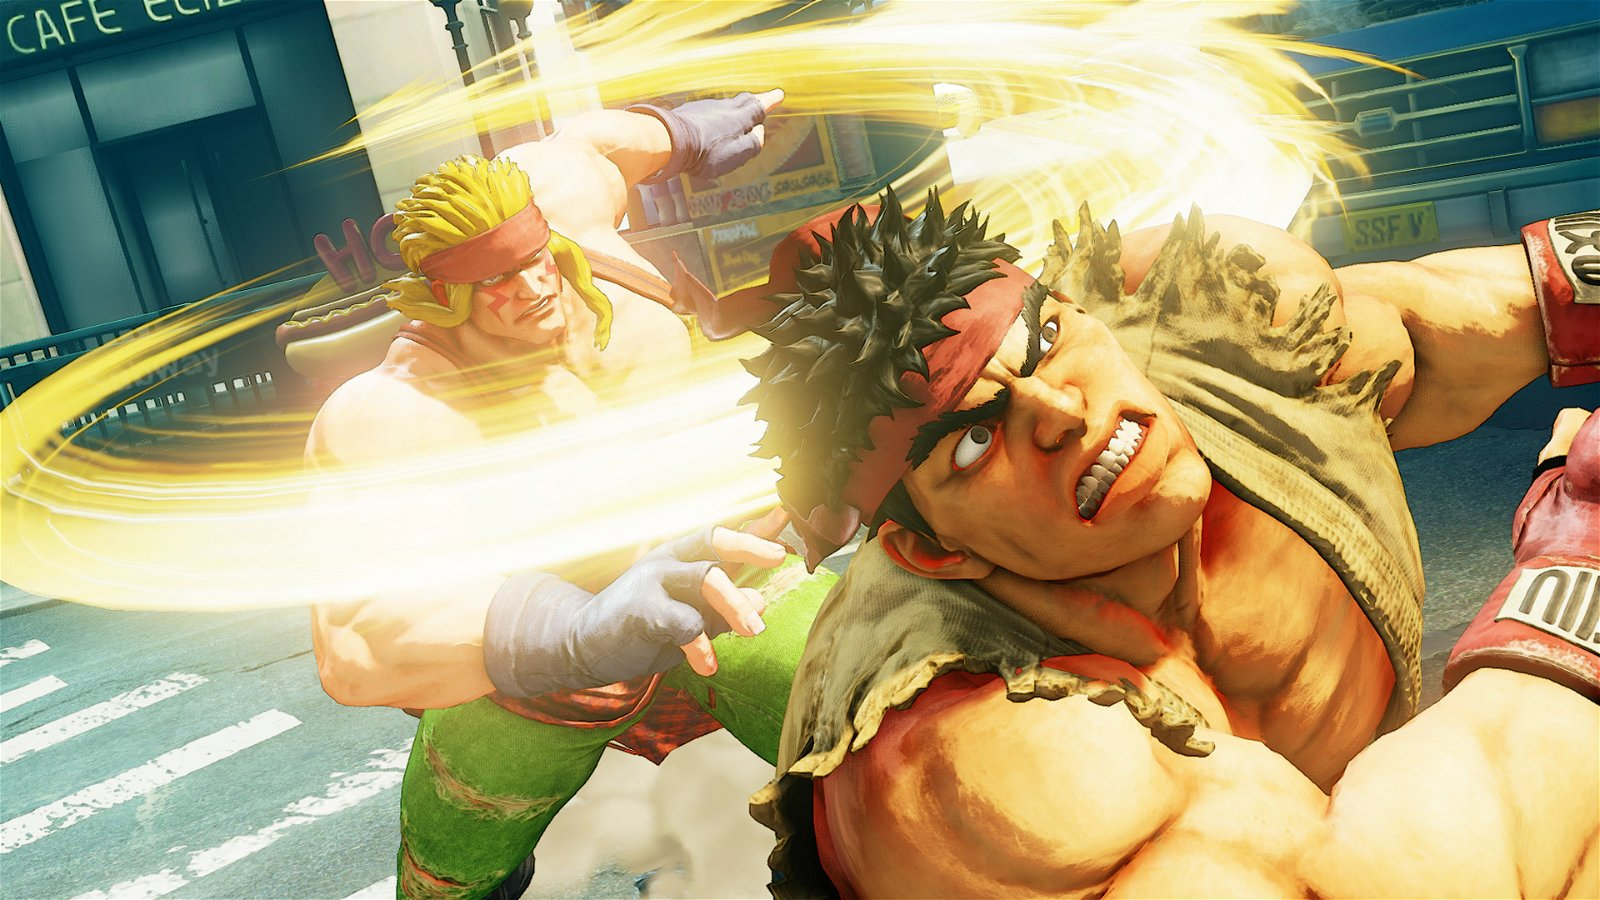 Street Fighter V: Arcade Edition (PS4) Review - Street Fighter V, For Real This Time 5